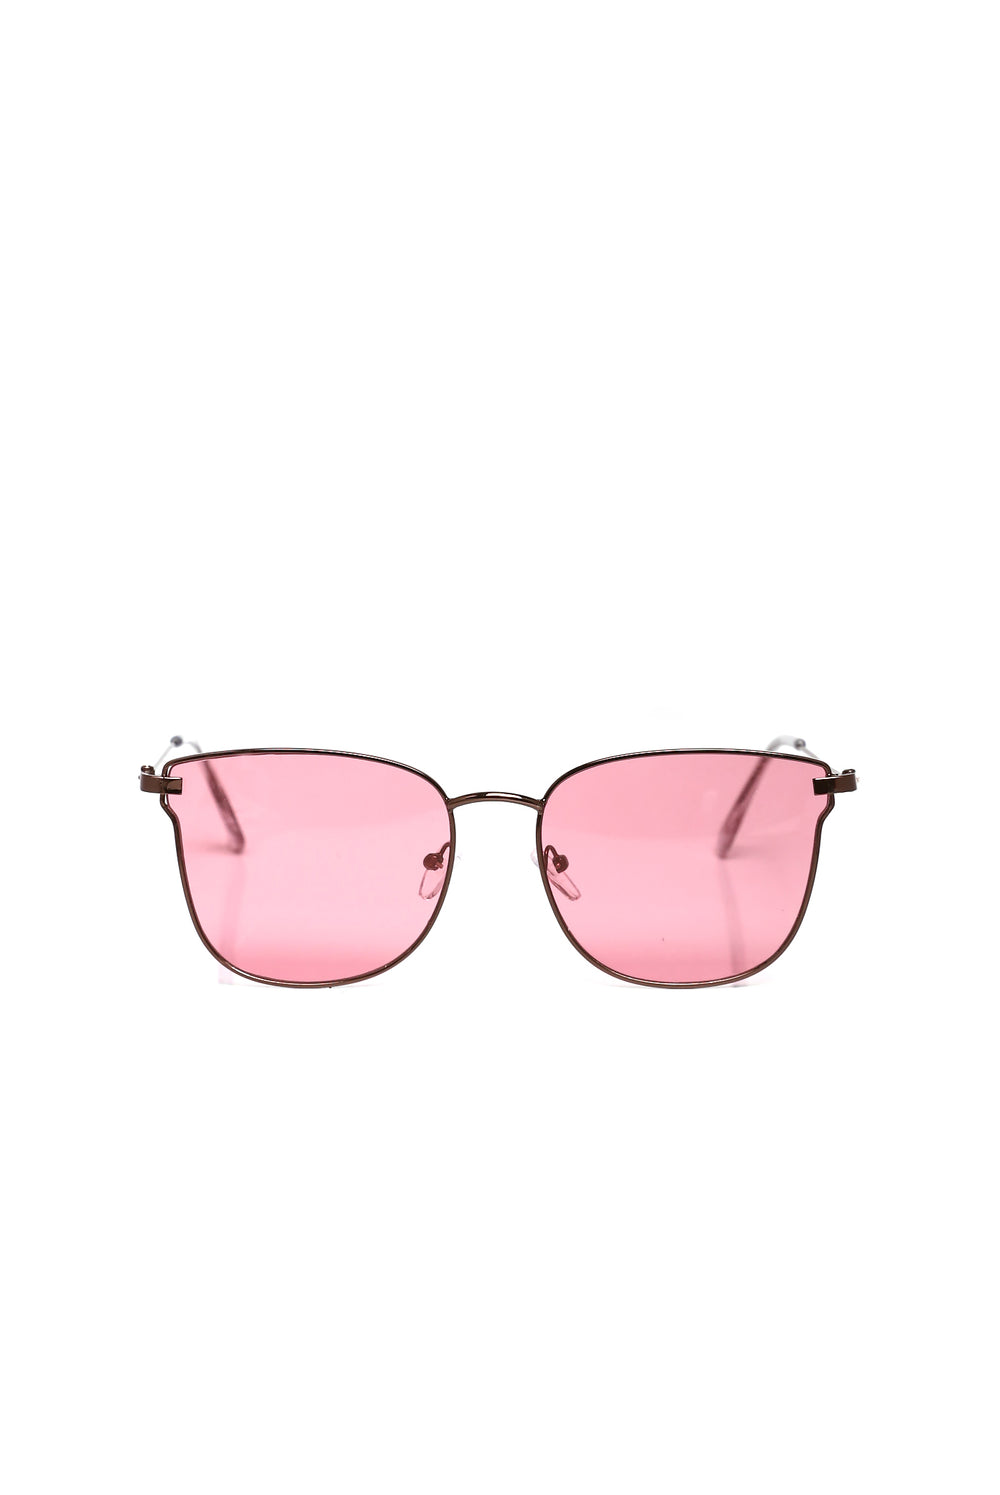 Panama City Sunglasses - Dark Gold/Pink